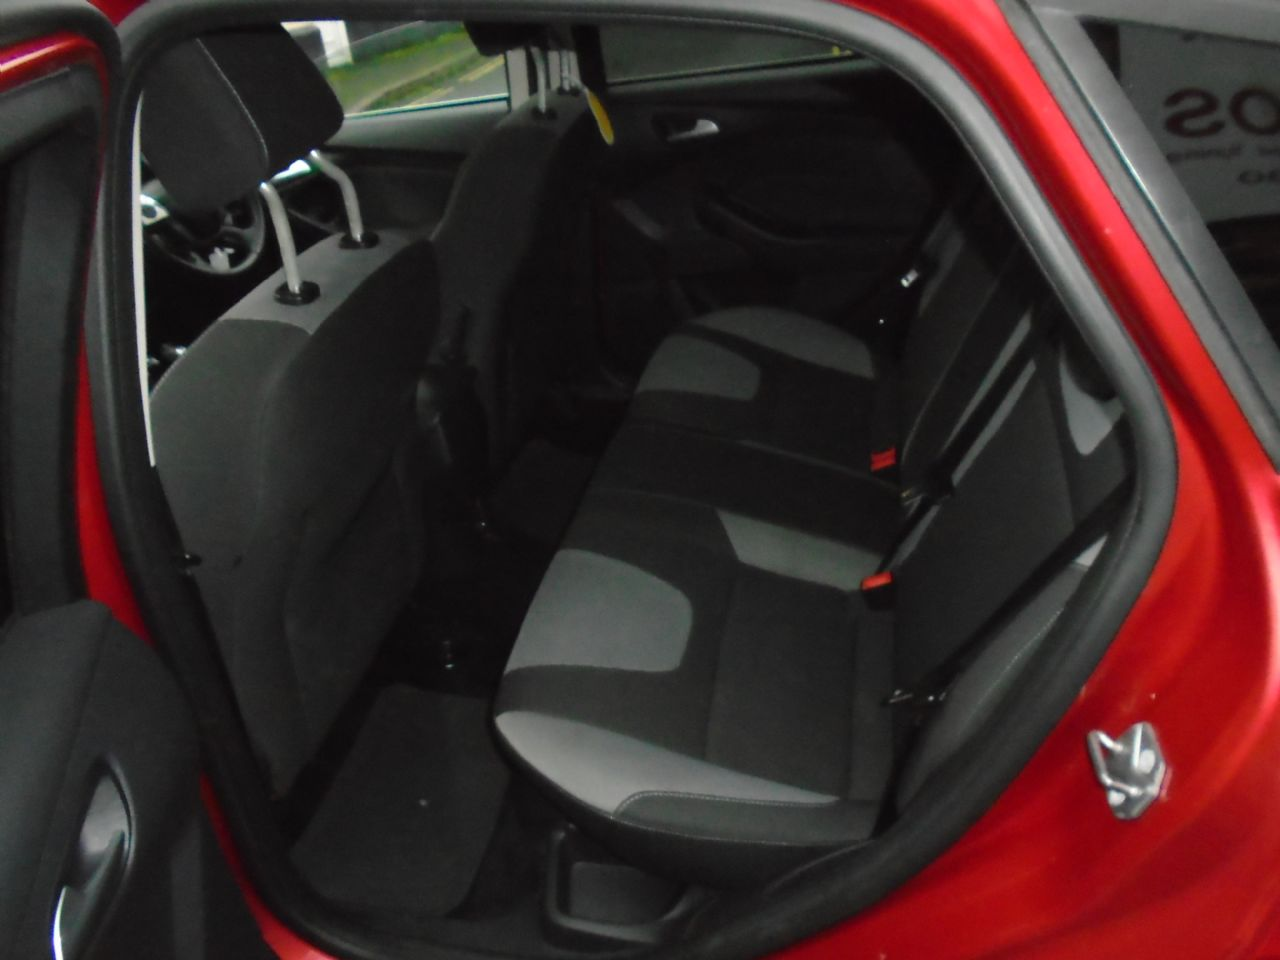 FORD Focus Zetec 1.6 Ti-VCT 125 PS - Picture 9